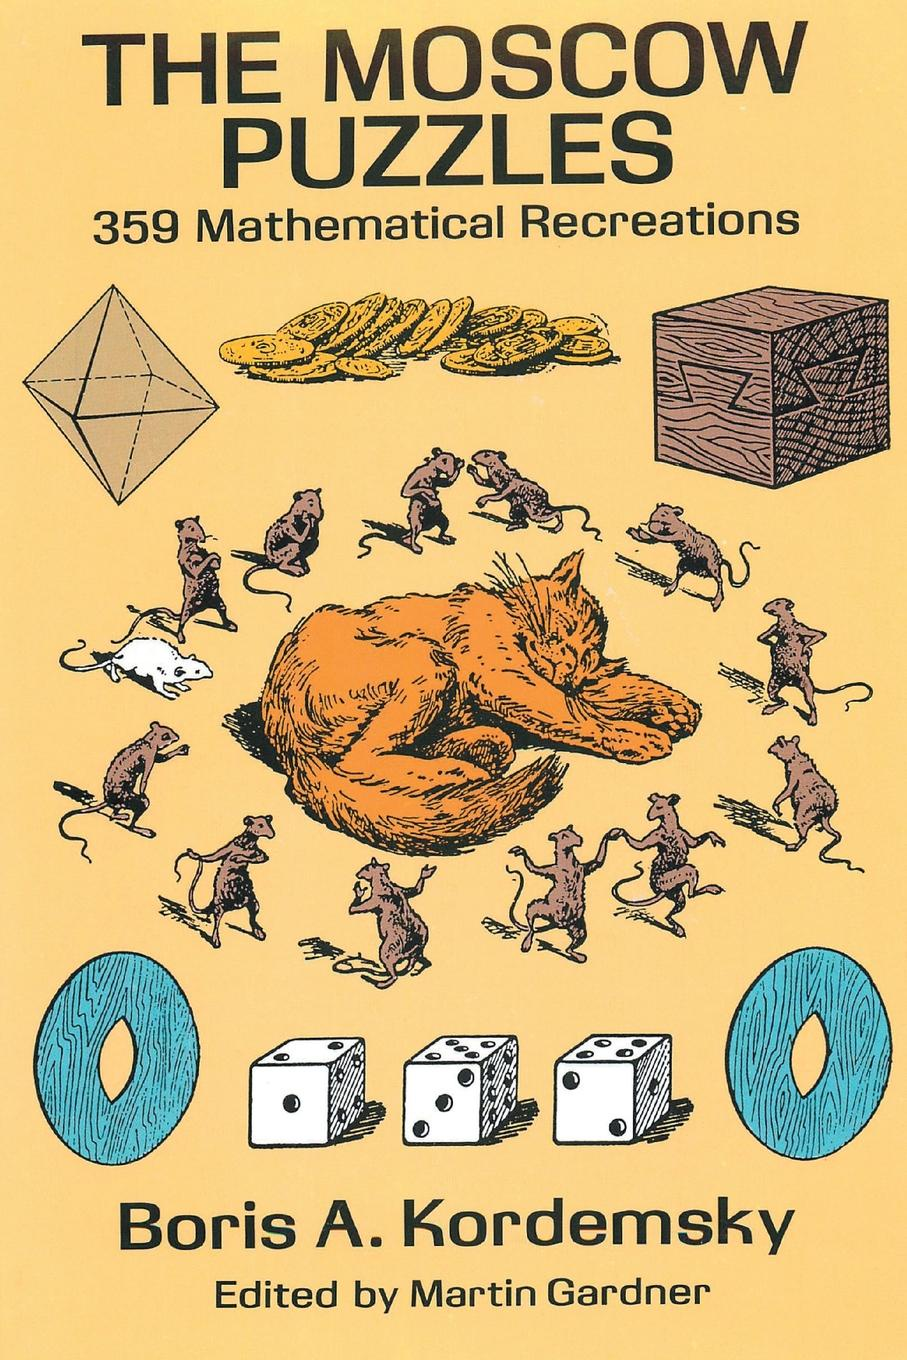 Boris A. Kordemsky. The Moscow Puzzles. 359 Mathematical Recreations